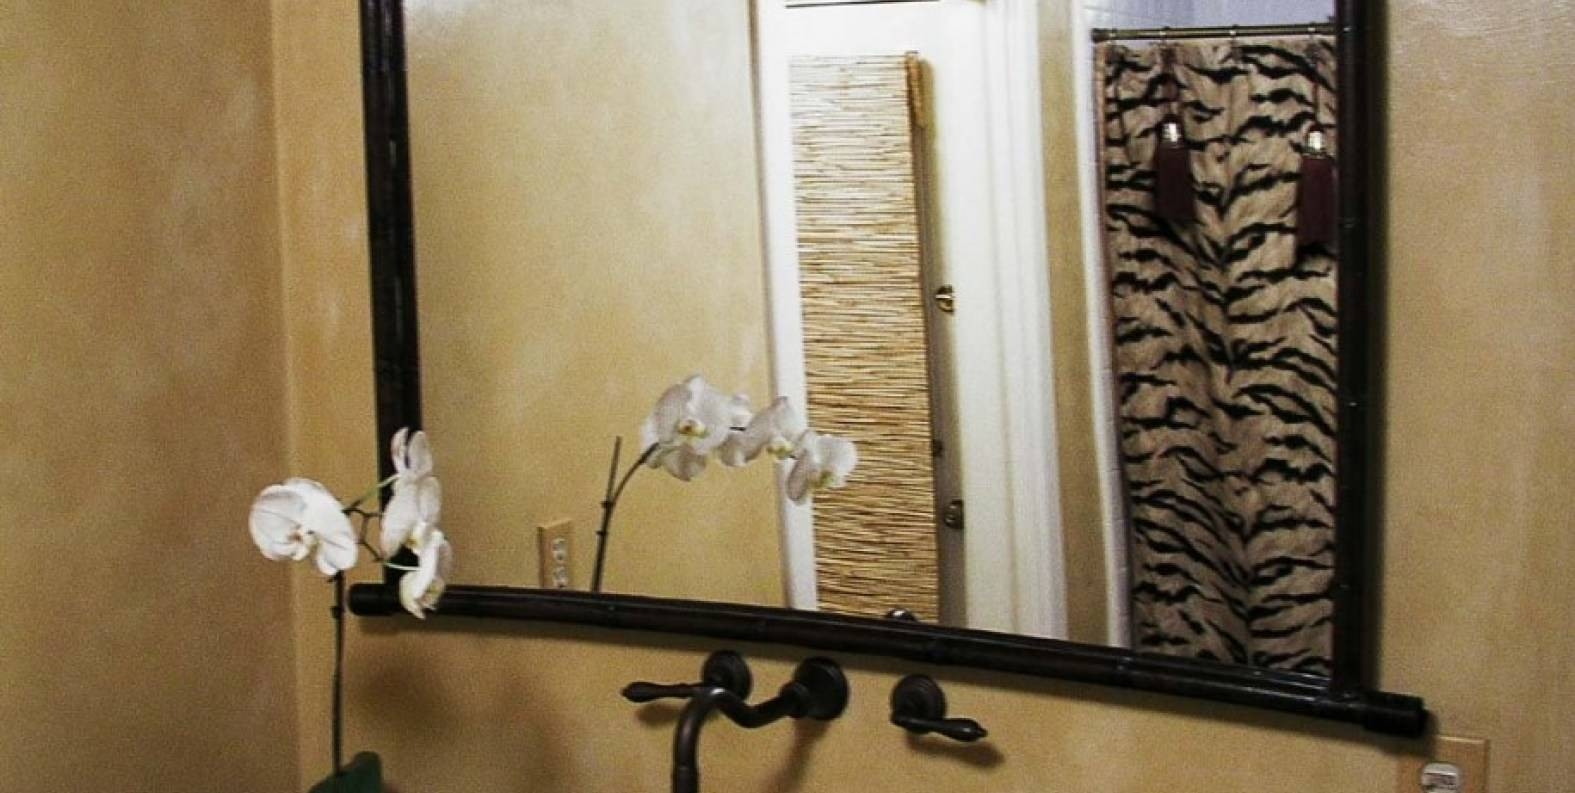 Mirror : Valuable Black Faux Leather Framed Mirror Breathtaking within Black Leather Framed Mirrors (Image 6 of 15)